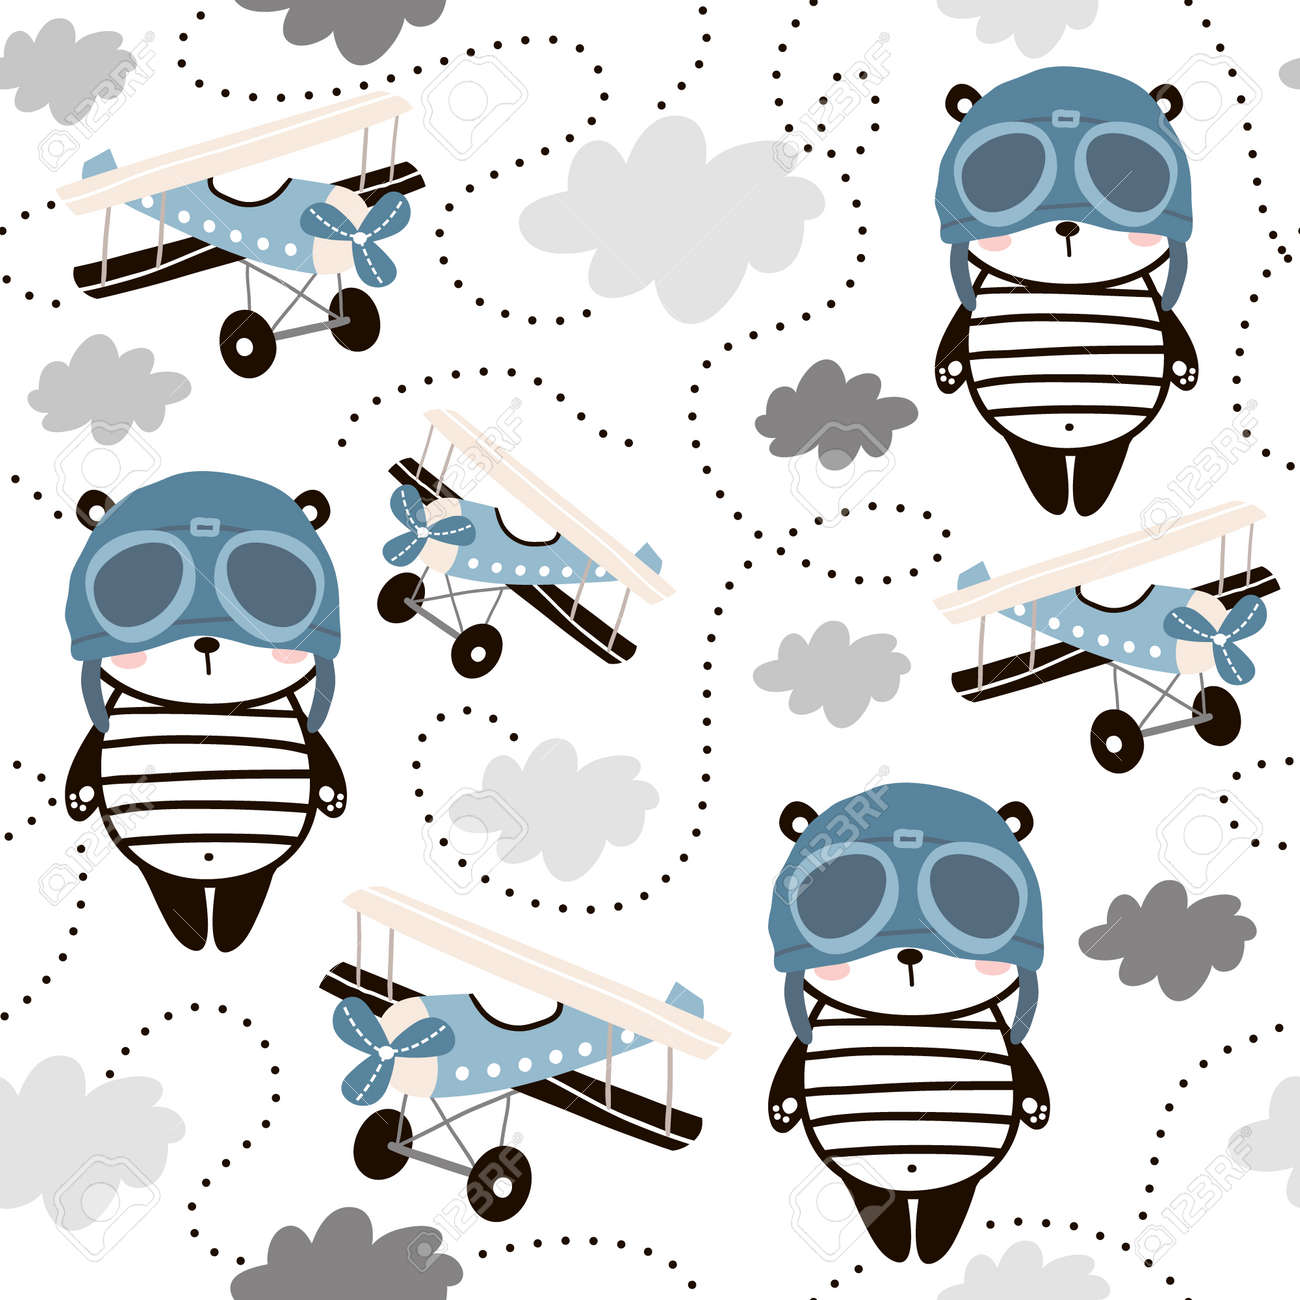 Seamless pattern with cute panda in pilot cap and retro air planes. Creative childish texture for fabric, wrapping, textile, wallpaper, apparel. Vector illustration. - 99070072